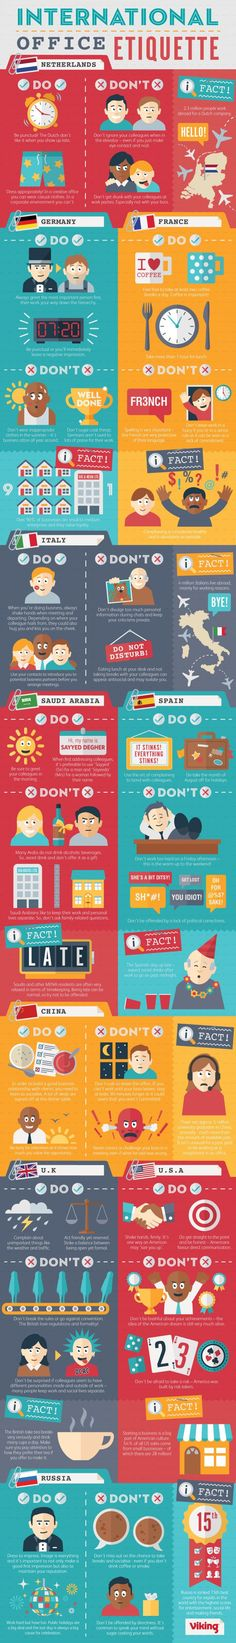 International Office Etiquette Infographic - what are the office norms in your country vs. office norms in other countries